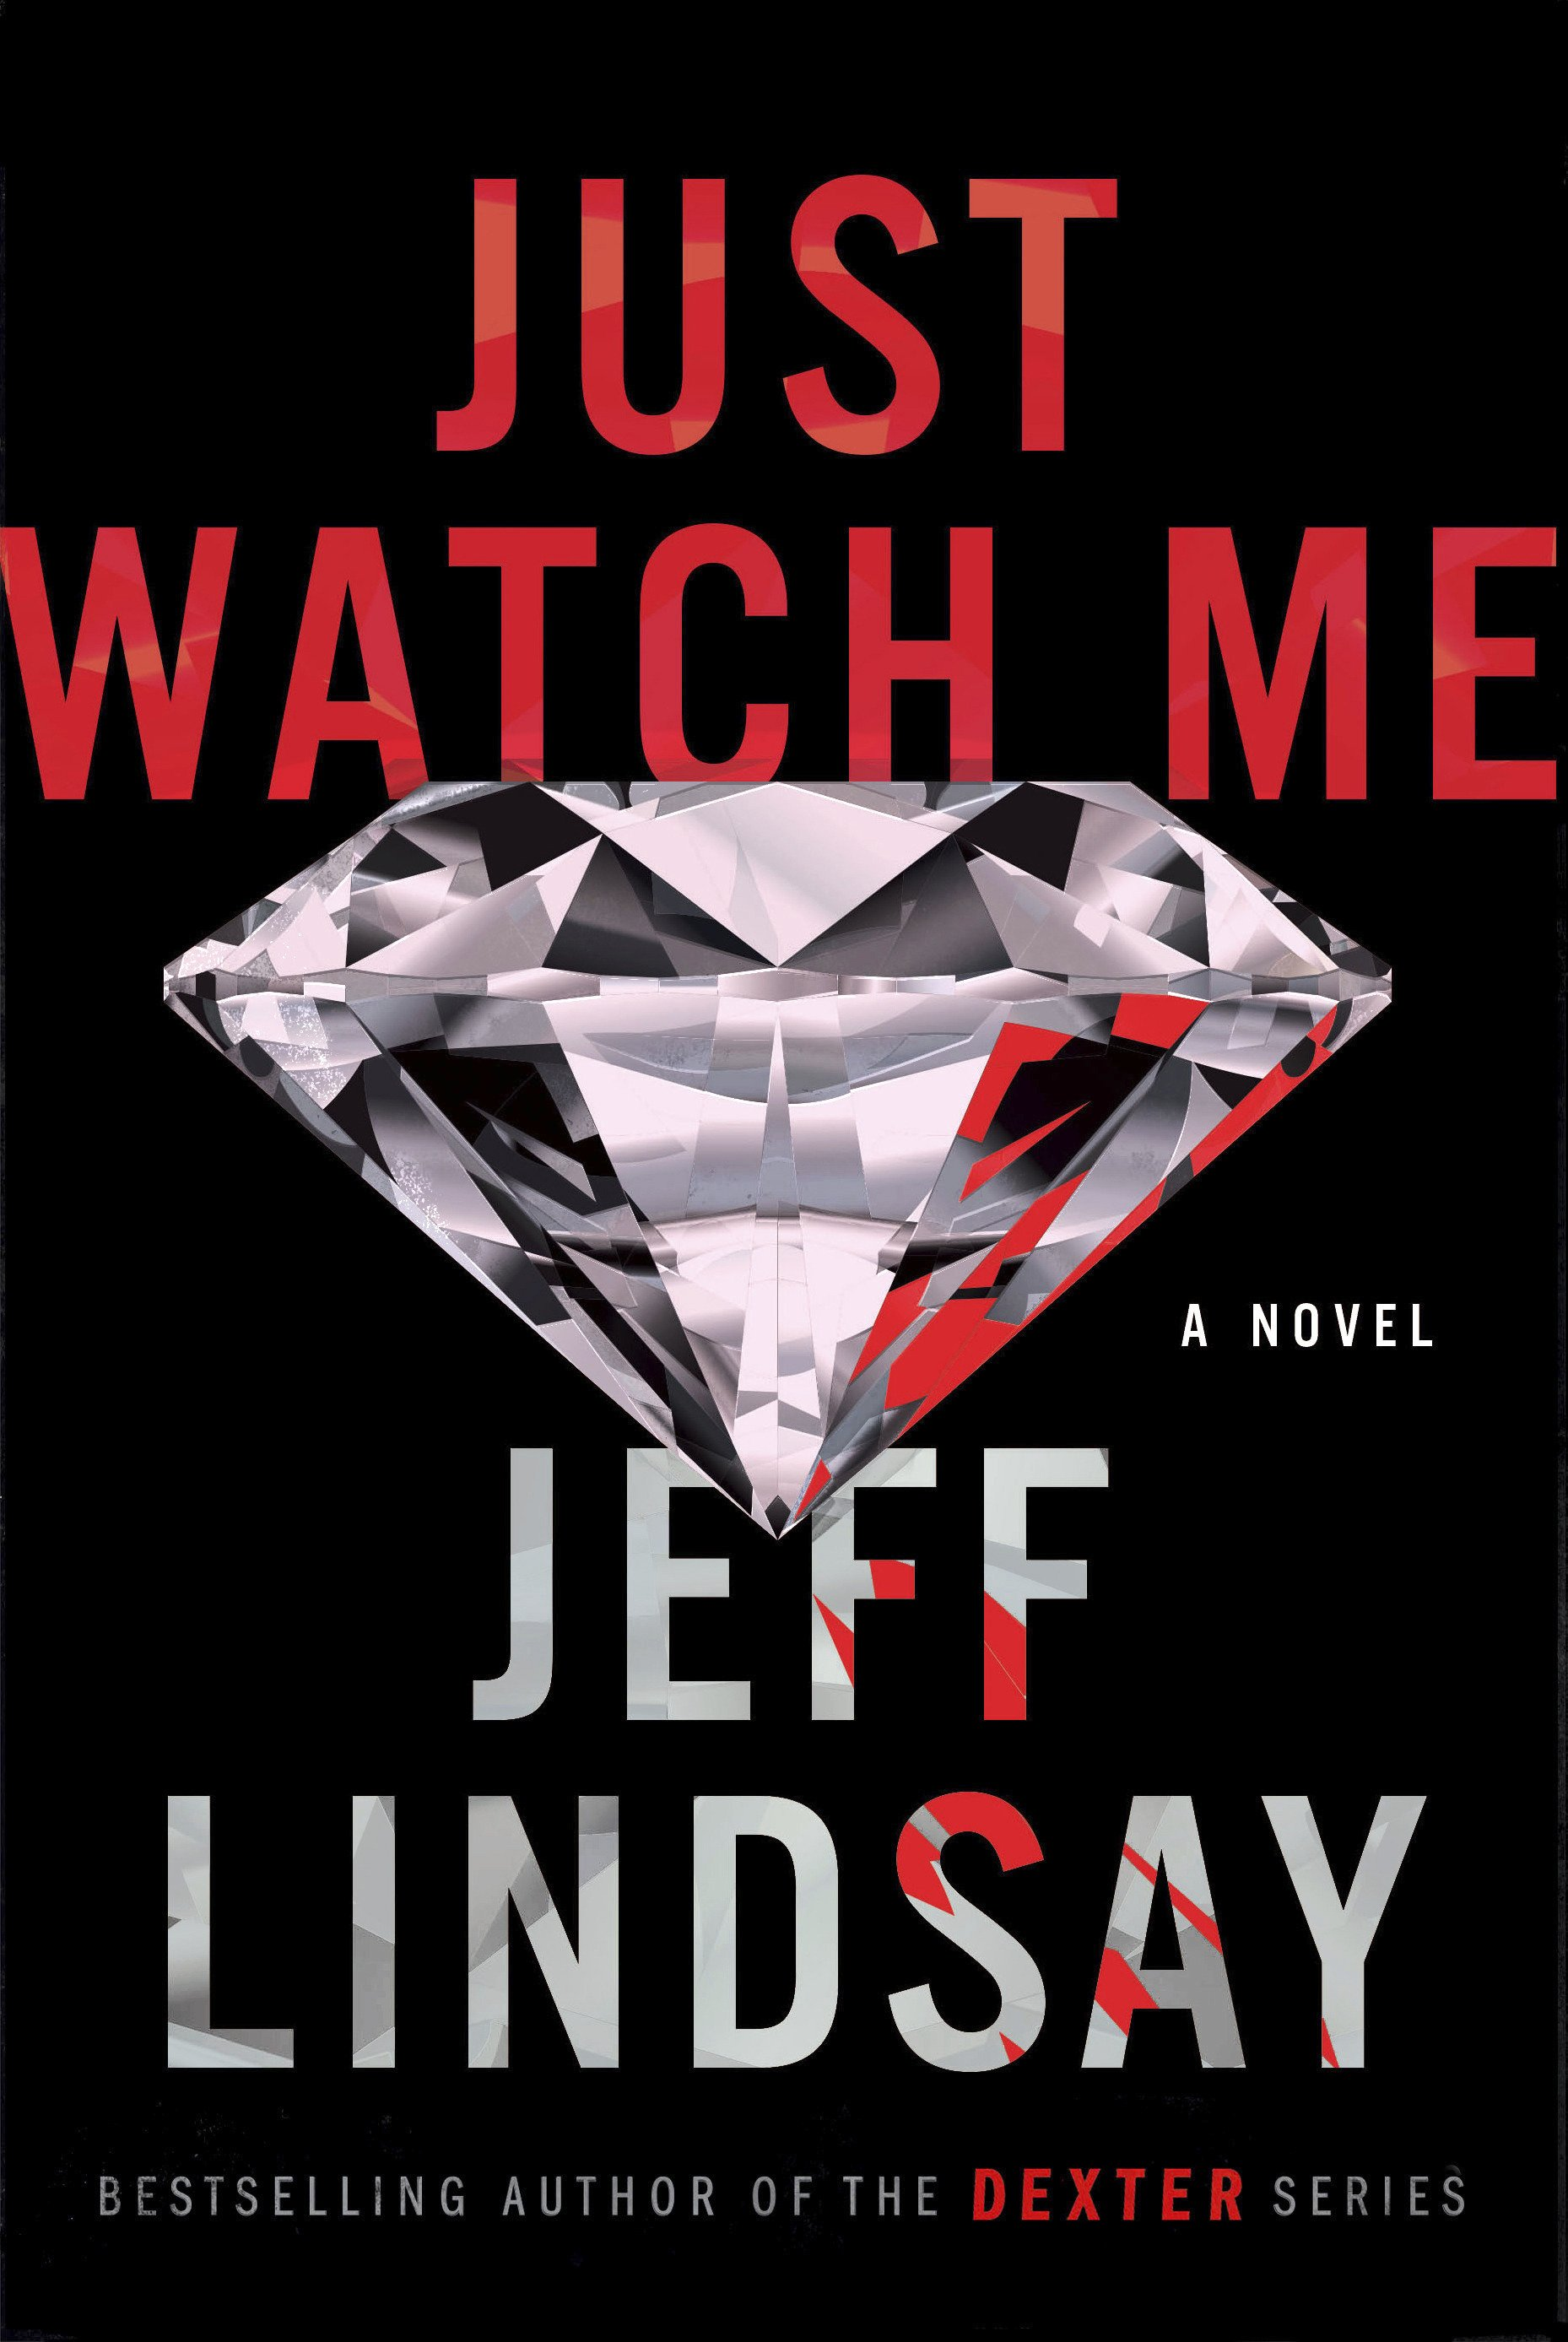 Review: Jeff Lindsay has entertaining new thriller